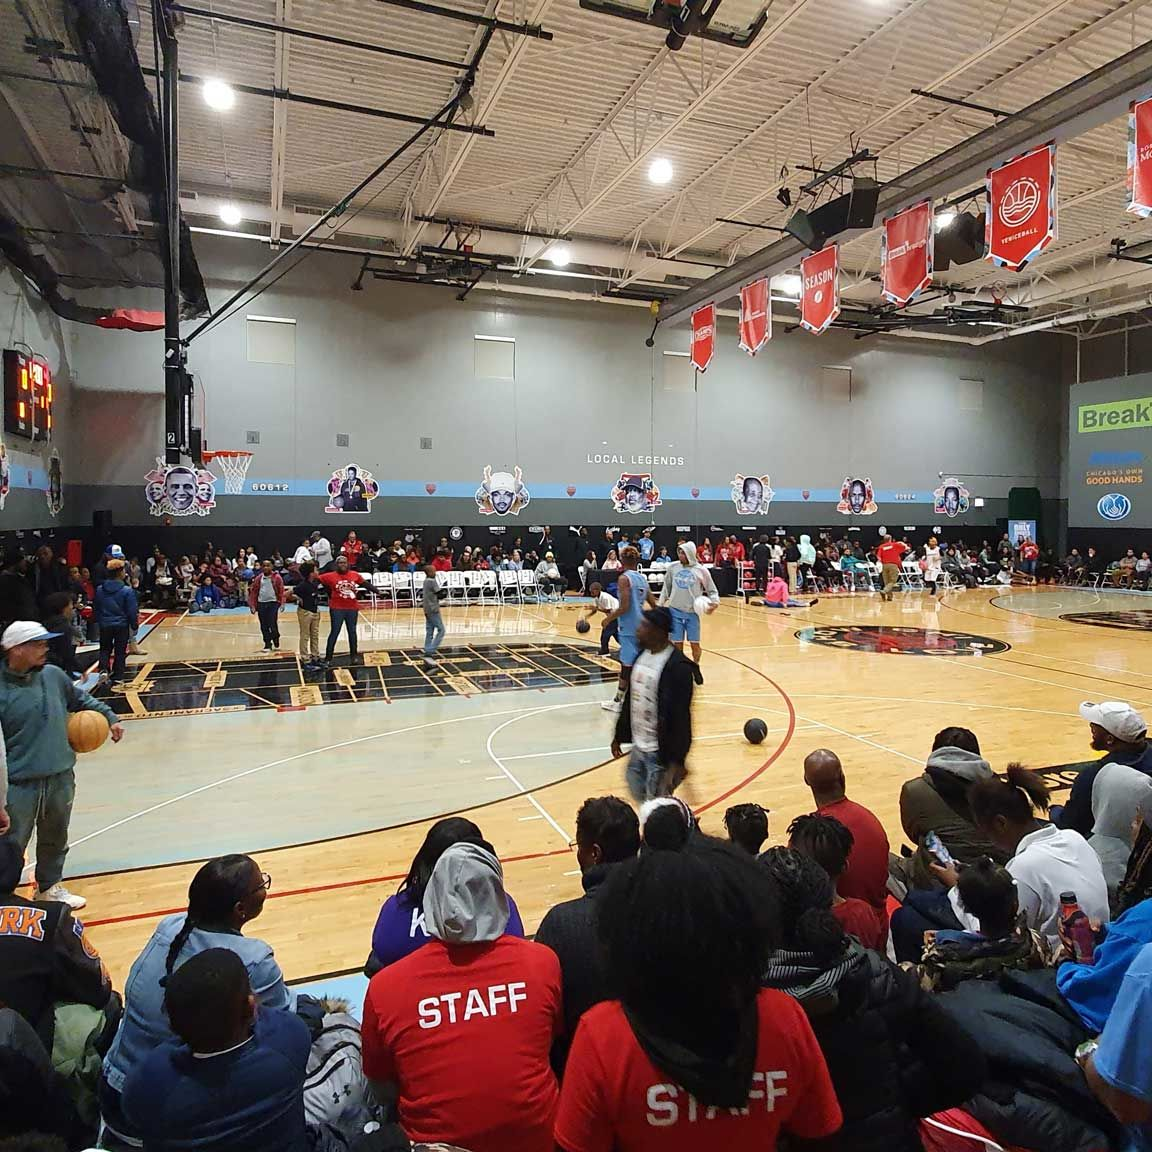 Breakthrough FamilyPlex gym hosting Show Chi Love basketball festival